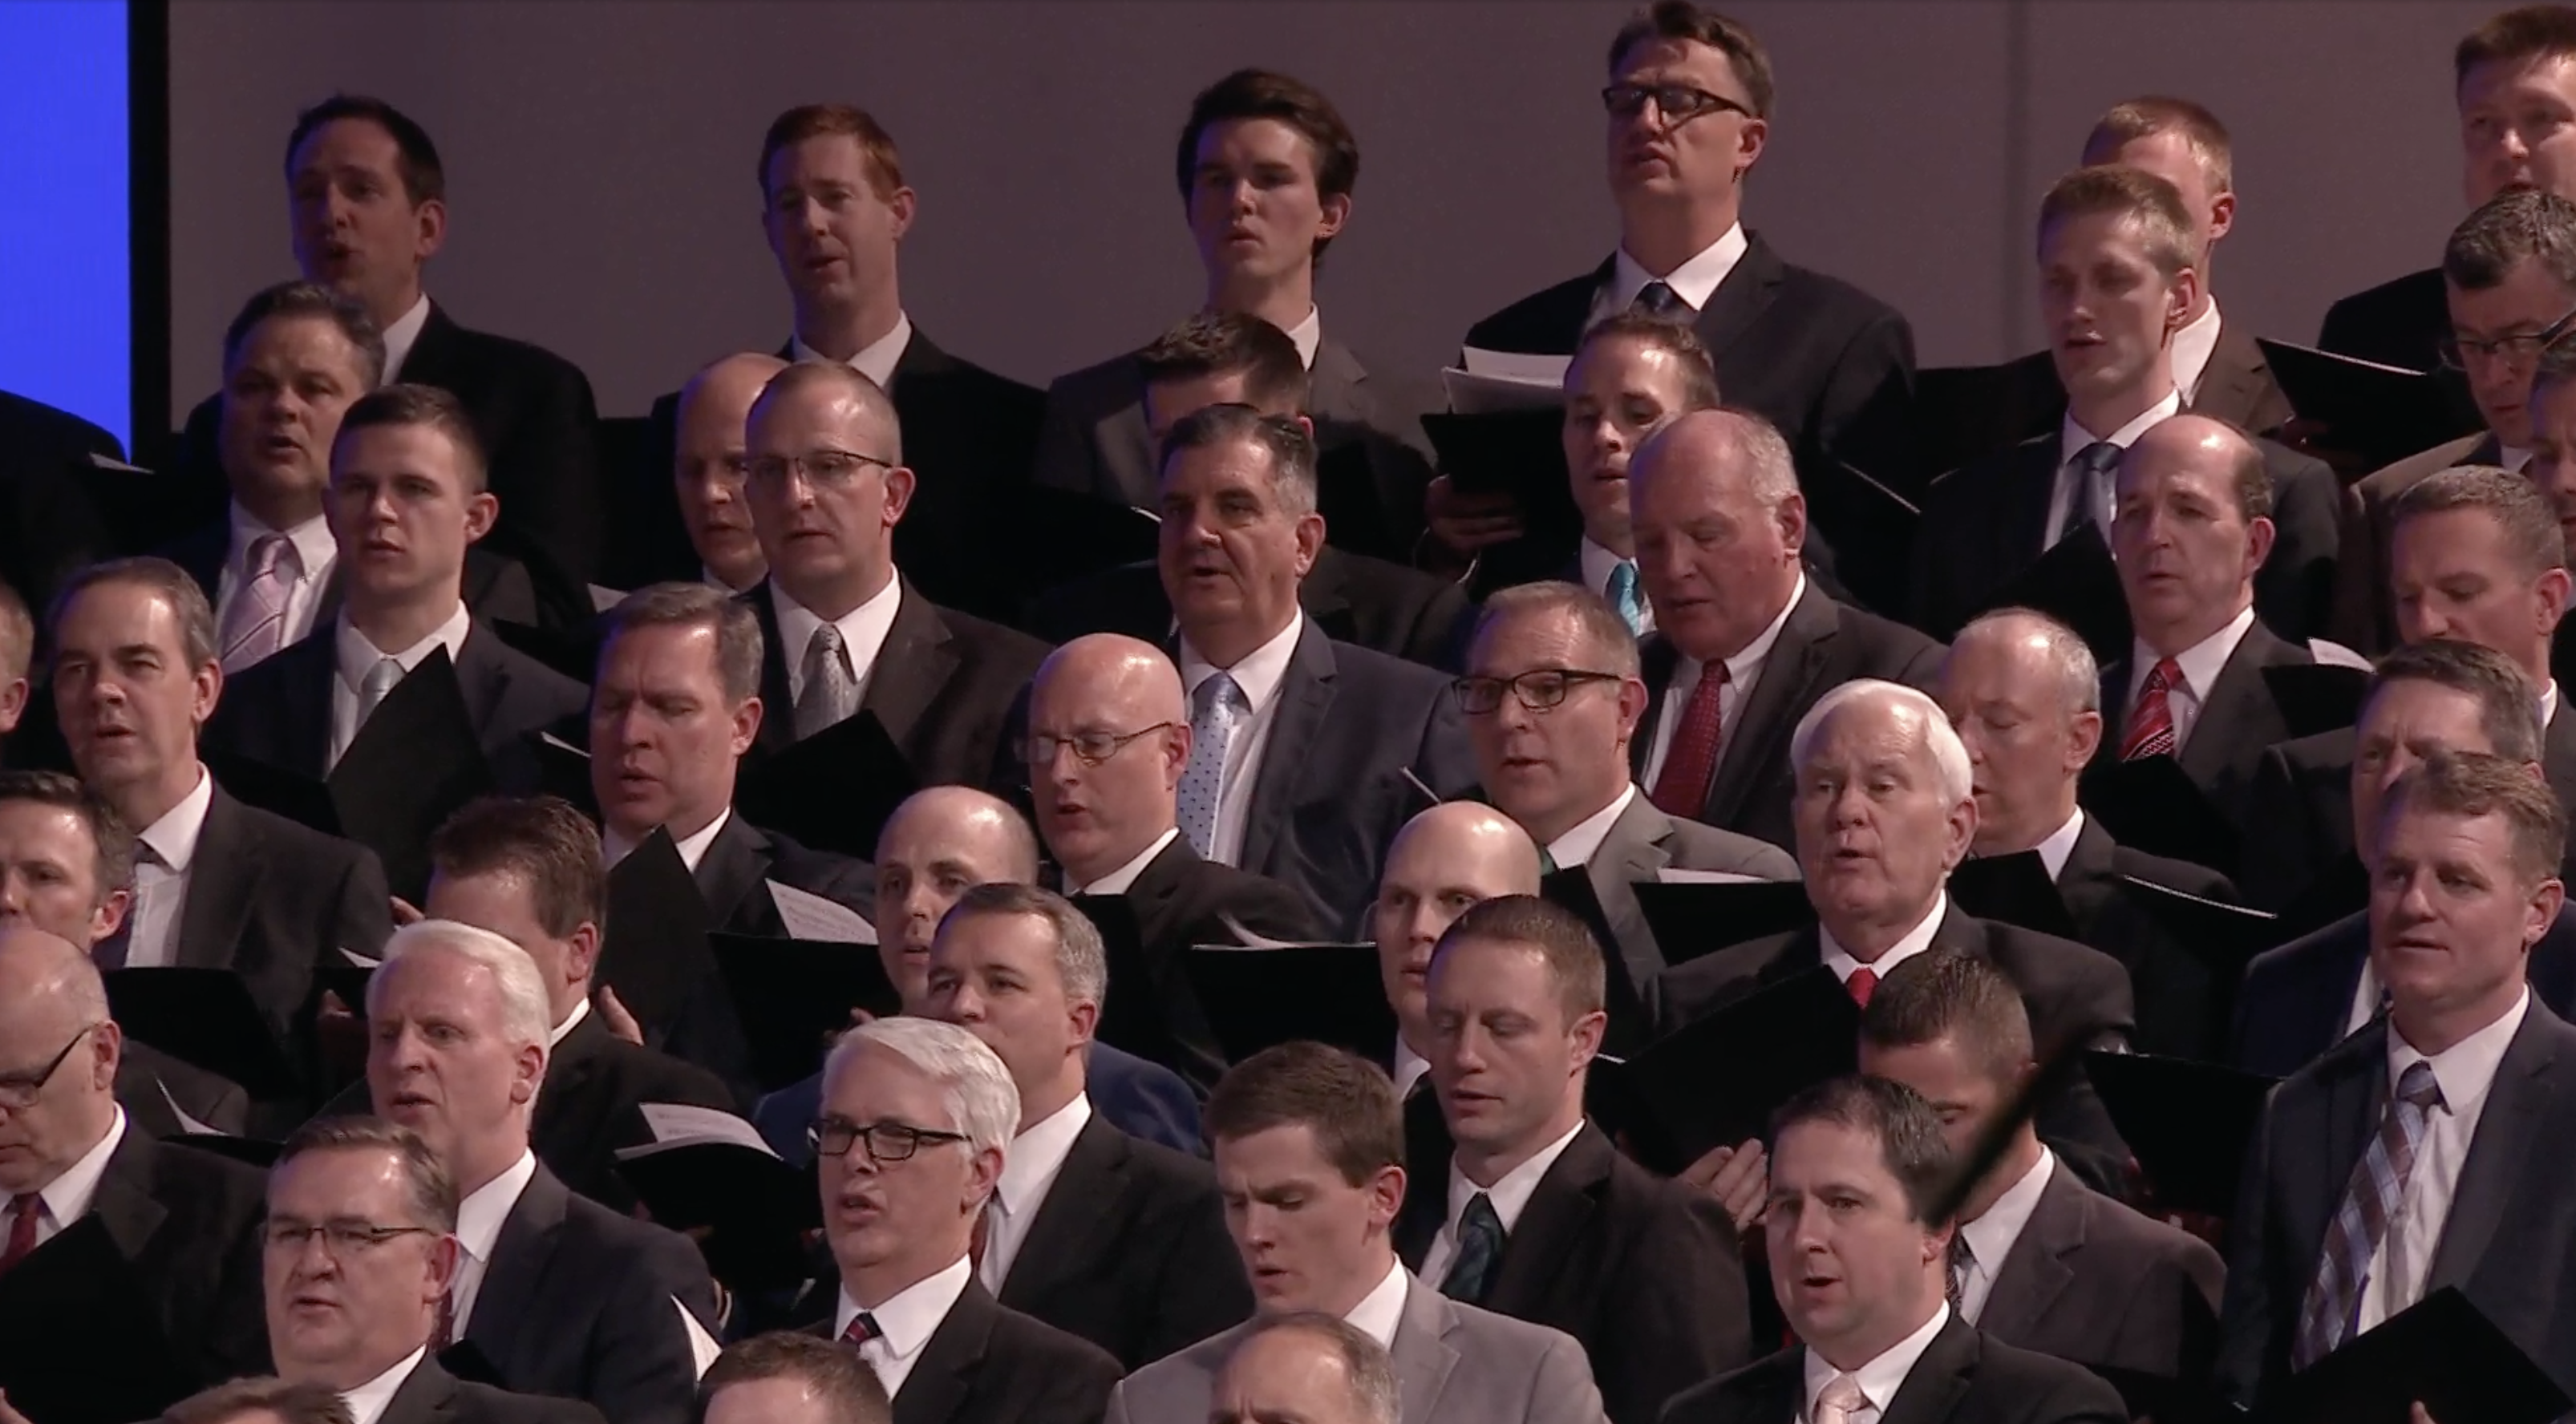 """Choir performs during """"An Evening with a General Authority: Elder Ronald A. Rasband"""" devotional, which was broadcast from the Tabernacle on Temple Square to Church Educational System employees, missionaries and their spouses on Feb. 8, 2019."""